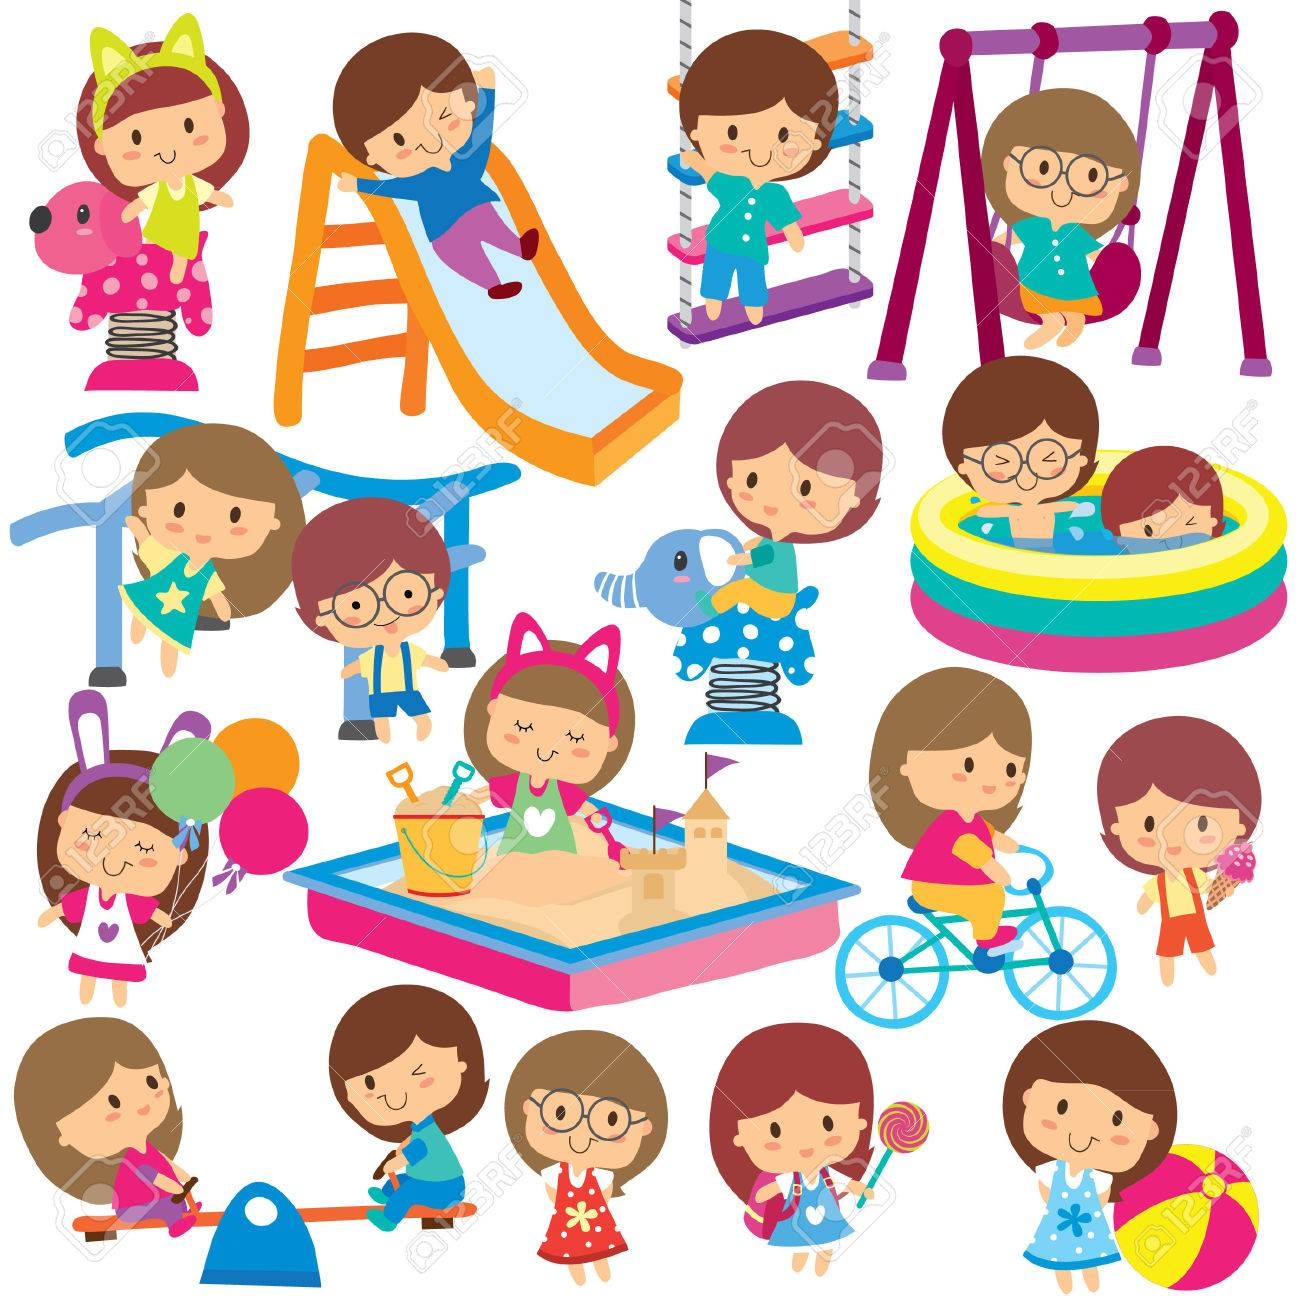 kids at playground clip art set royalty free cliparts vectors and rh 123rf com clipart playground images clipart playground slide